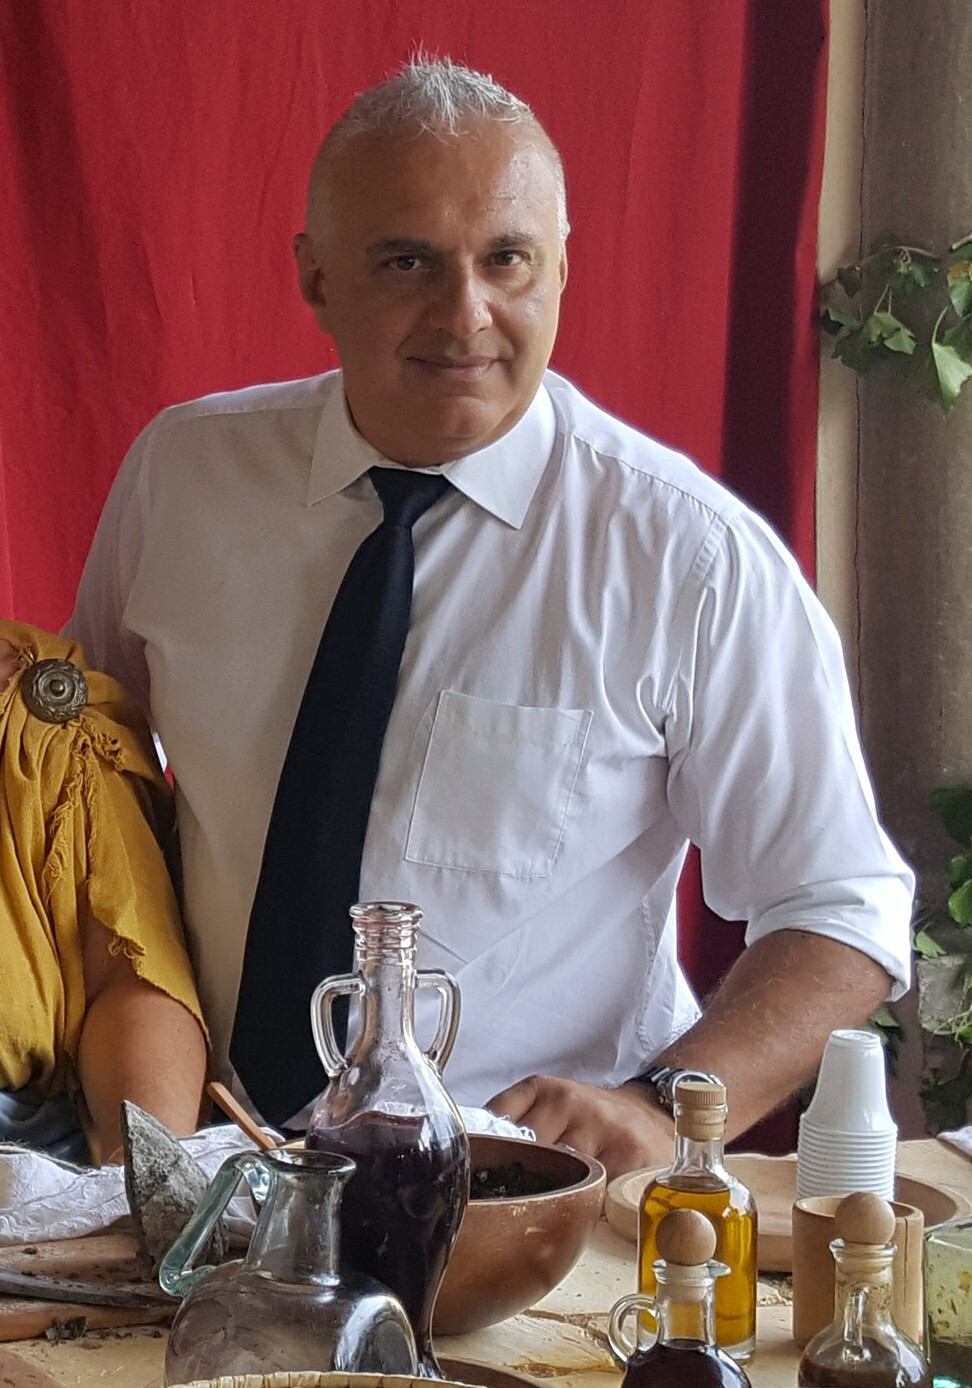 Food historian Giorgio Franchetti is a scholar of ancient Roman history and the author of the book Dining with the Ancient Romans.